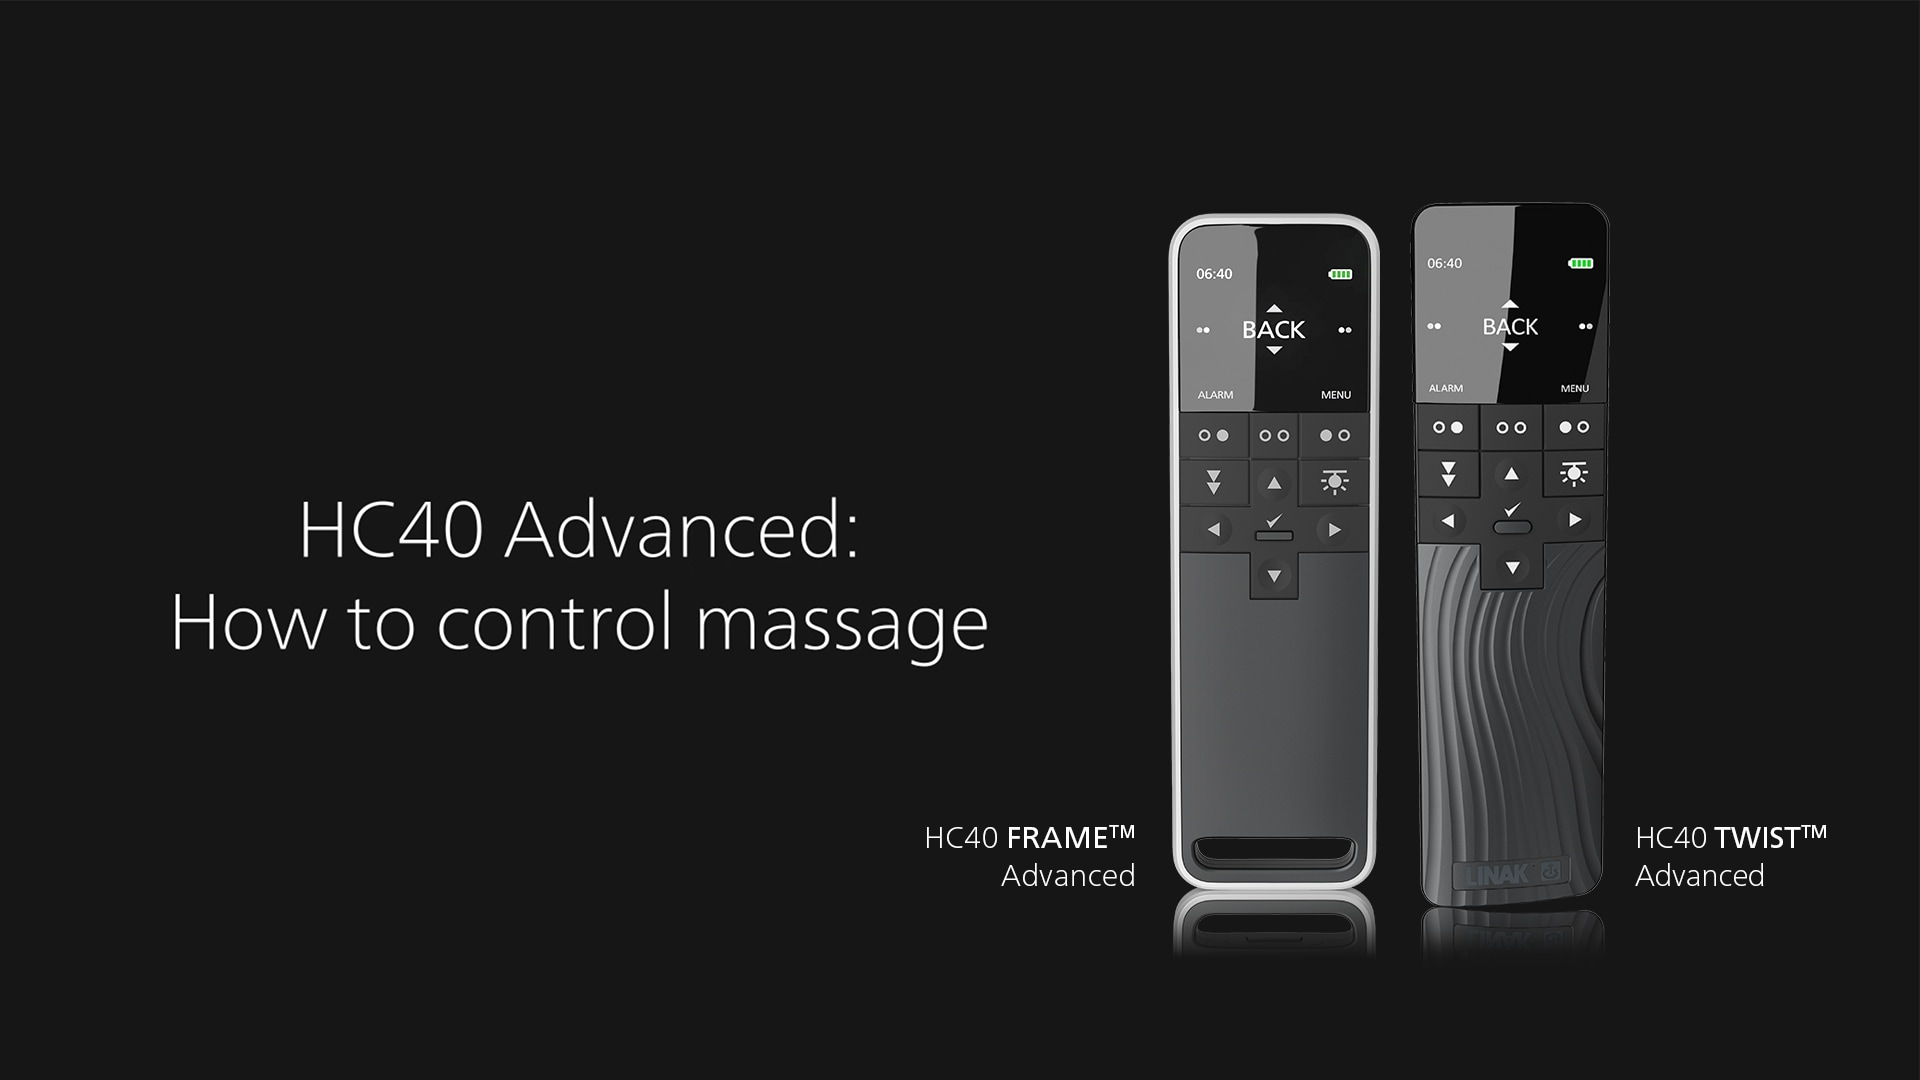 HC40 Advanced: Contrôle du massage